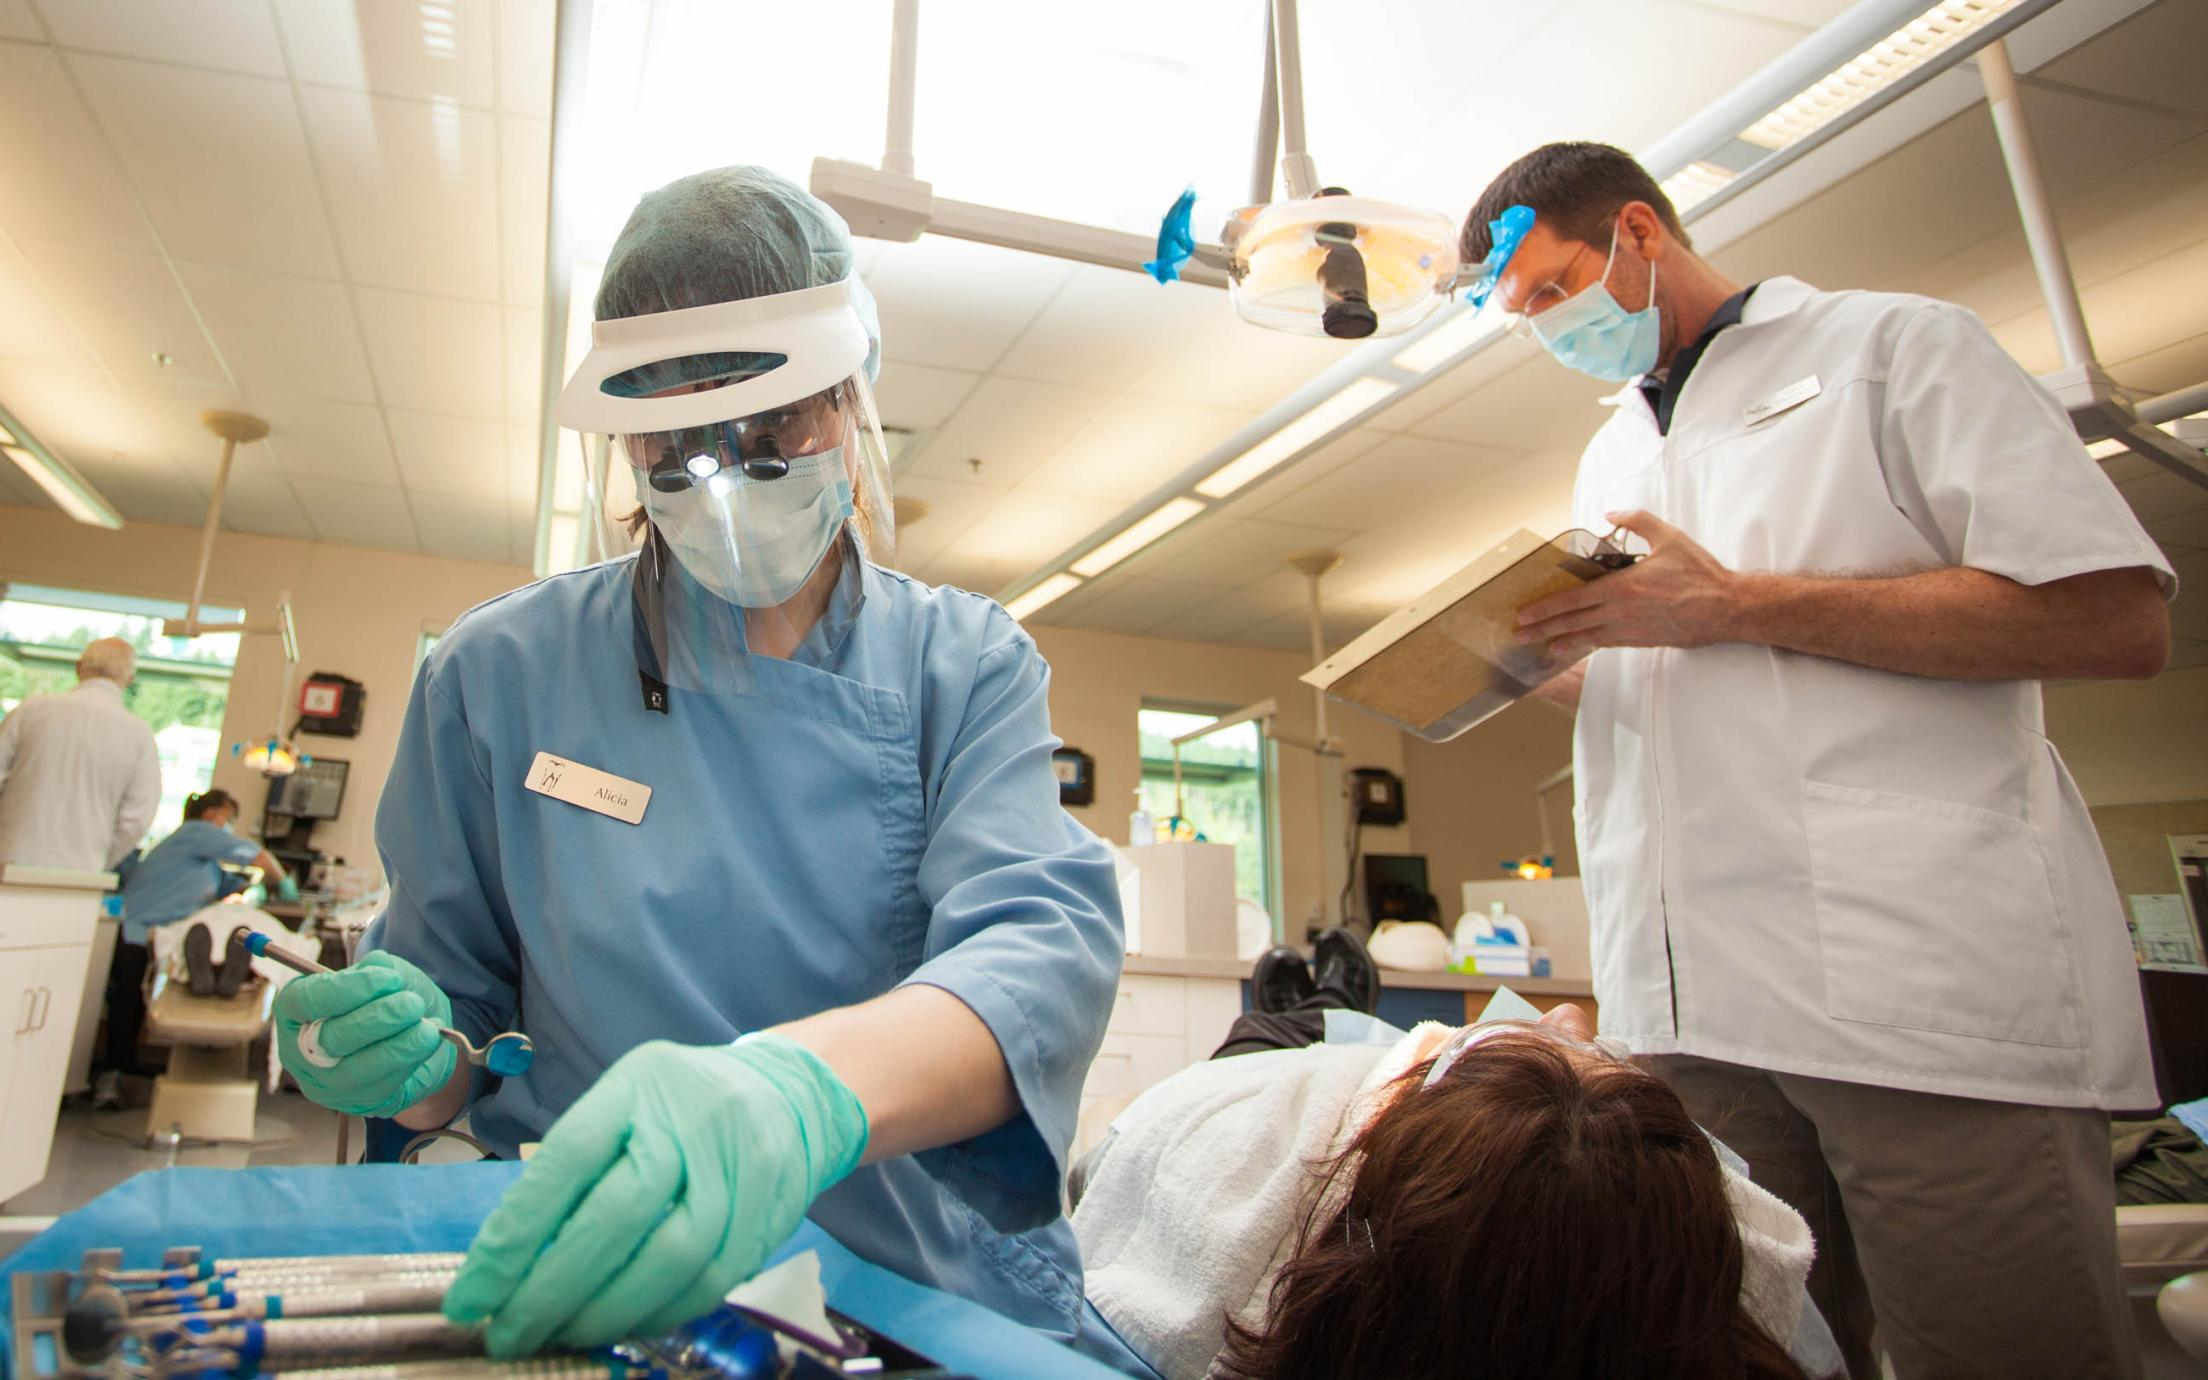 Looking for dental hygiene schools in BC? This Dental Hygienist found her path at VIU